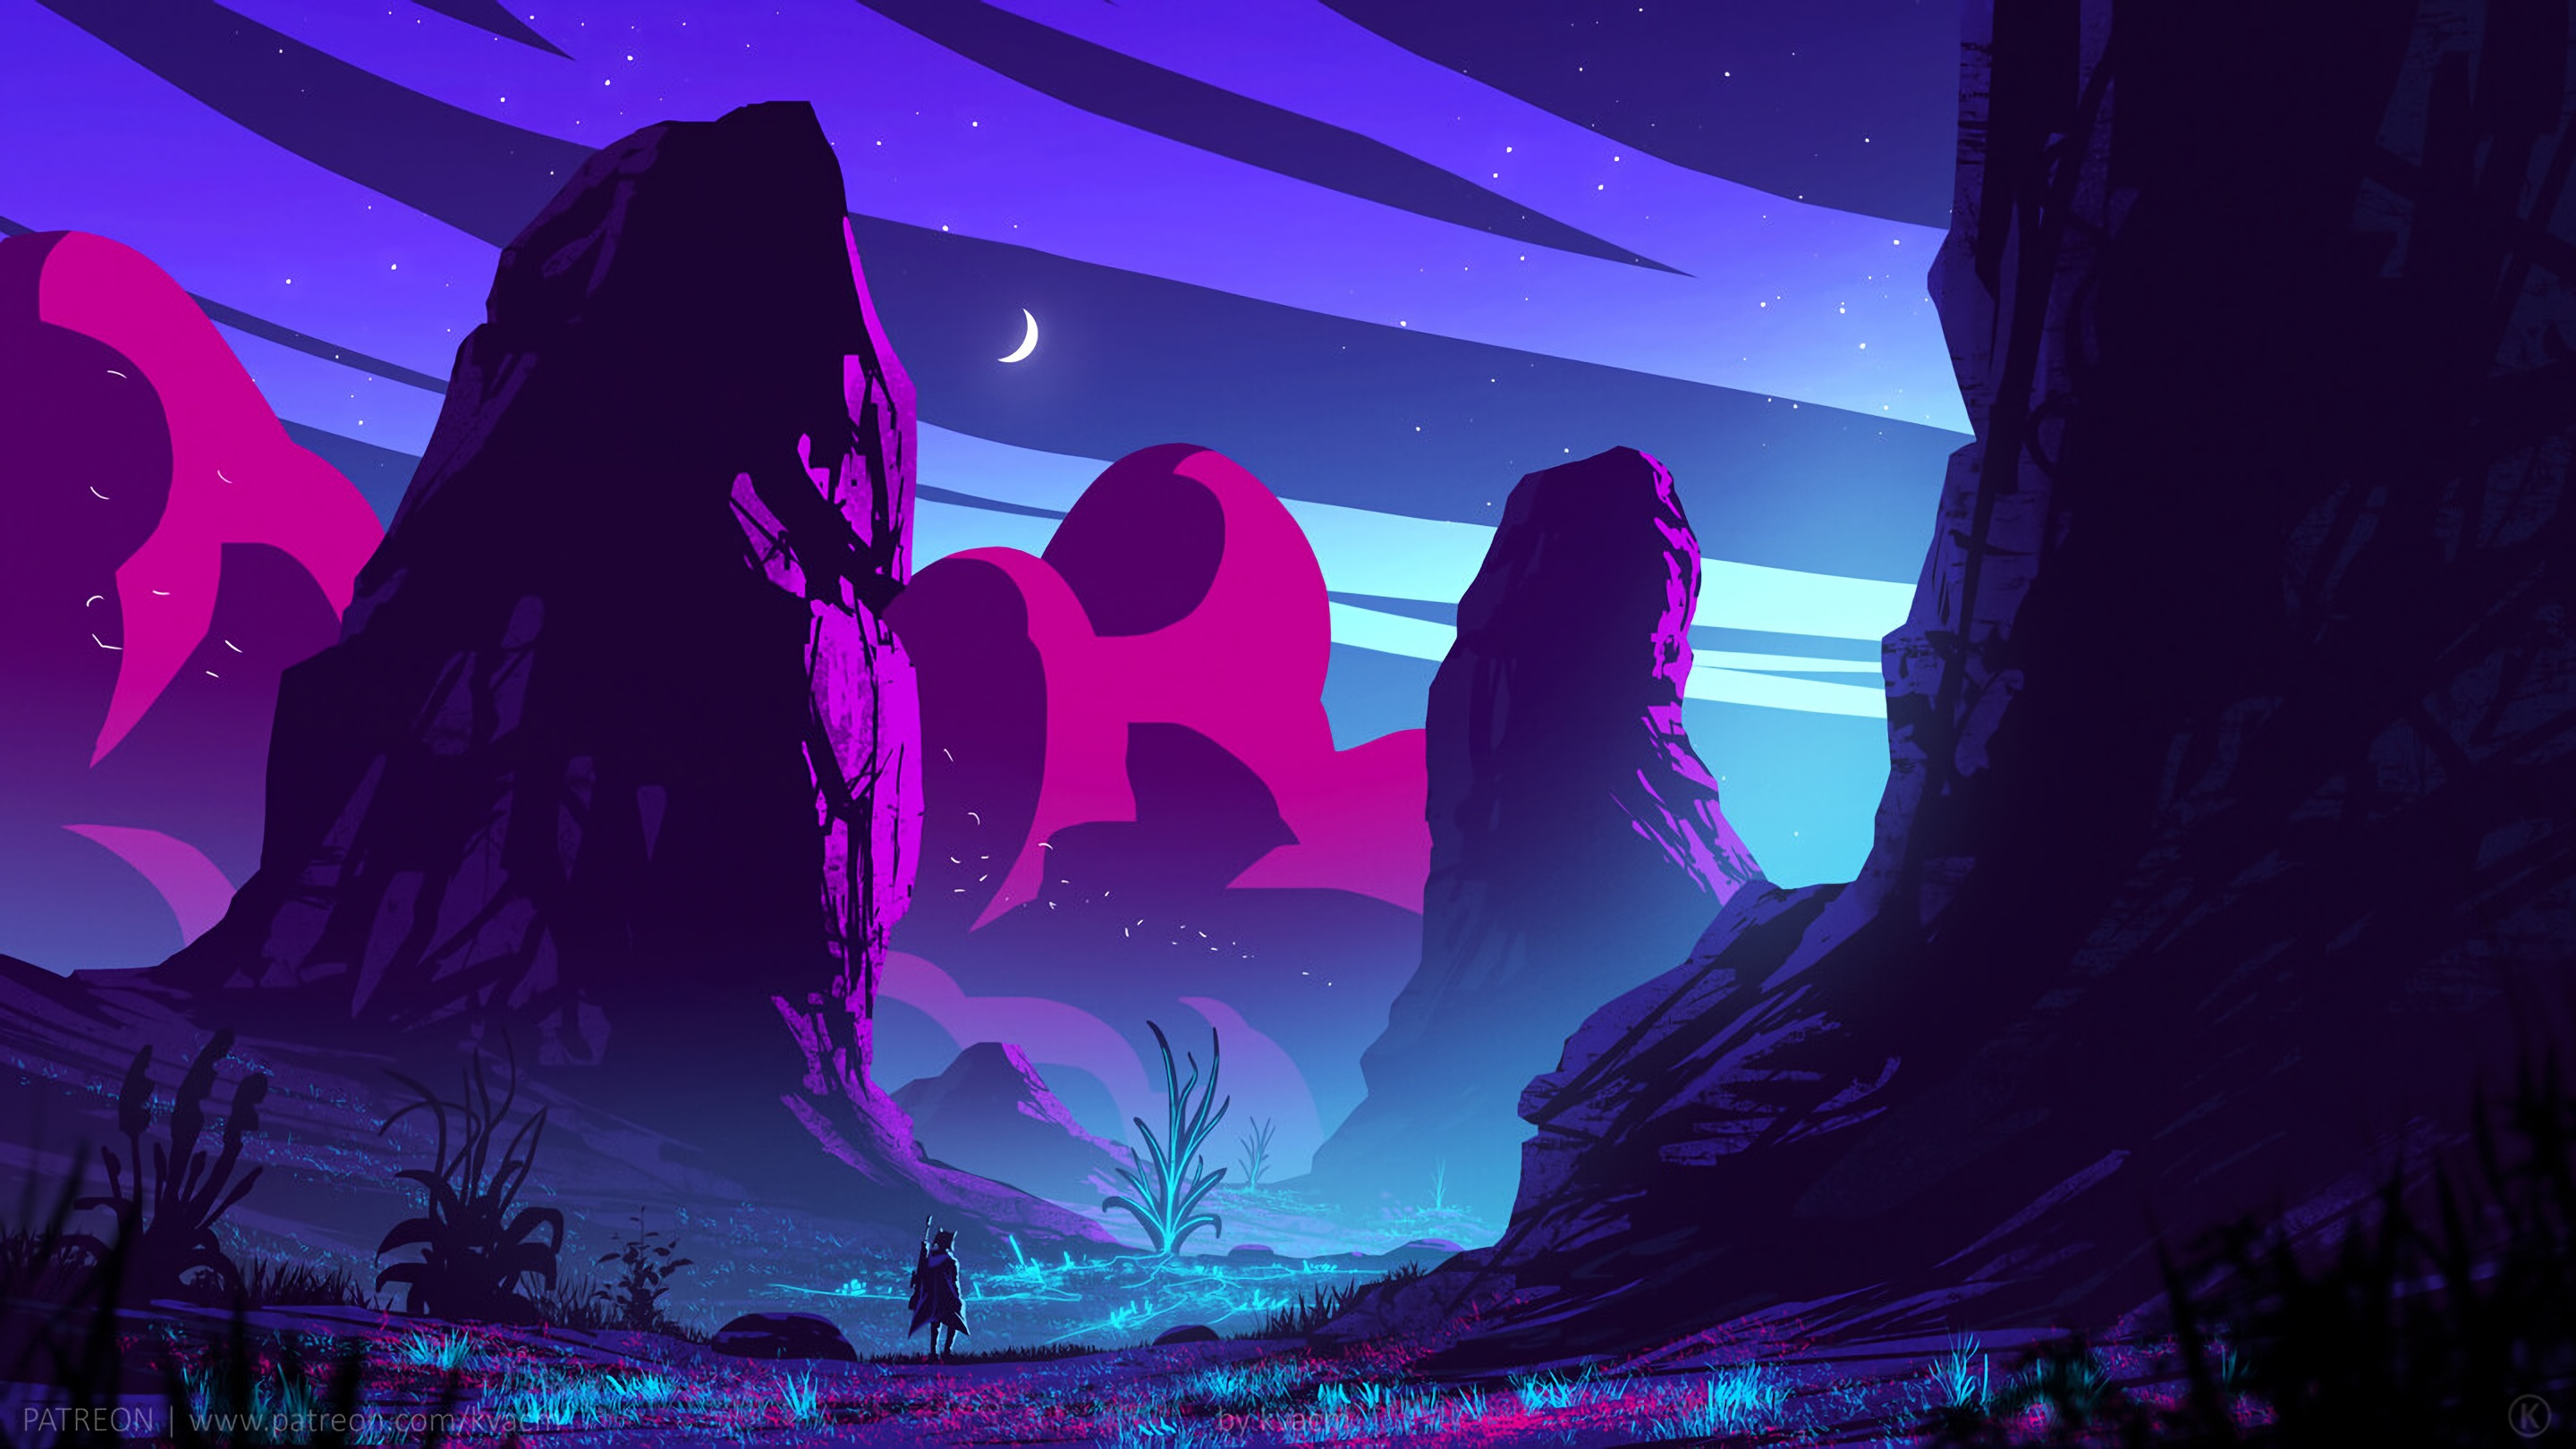 General 2880x1620 digital digital art artwork illustration Retrowave synthwave vaporwave silhouette traveller men outdoors warrior night night sky sky skyscape mountains rocks plants neon lights neon lights dark Moon stars clouds fantasy art landscape colorful cyan